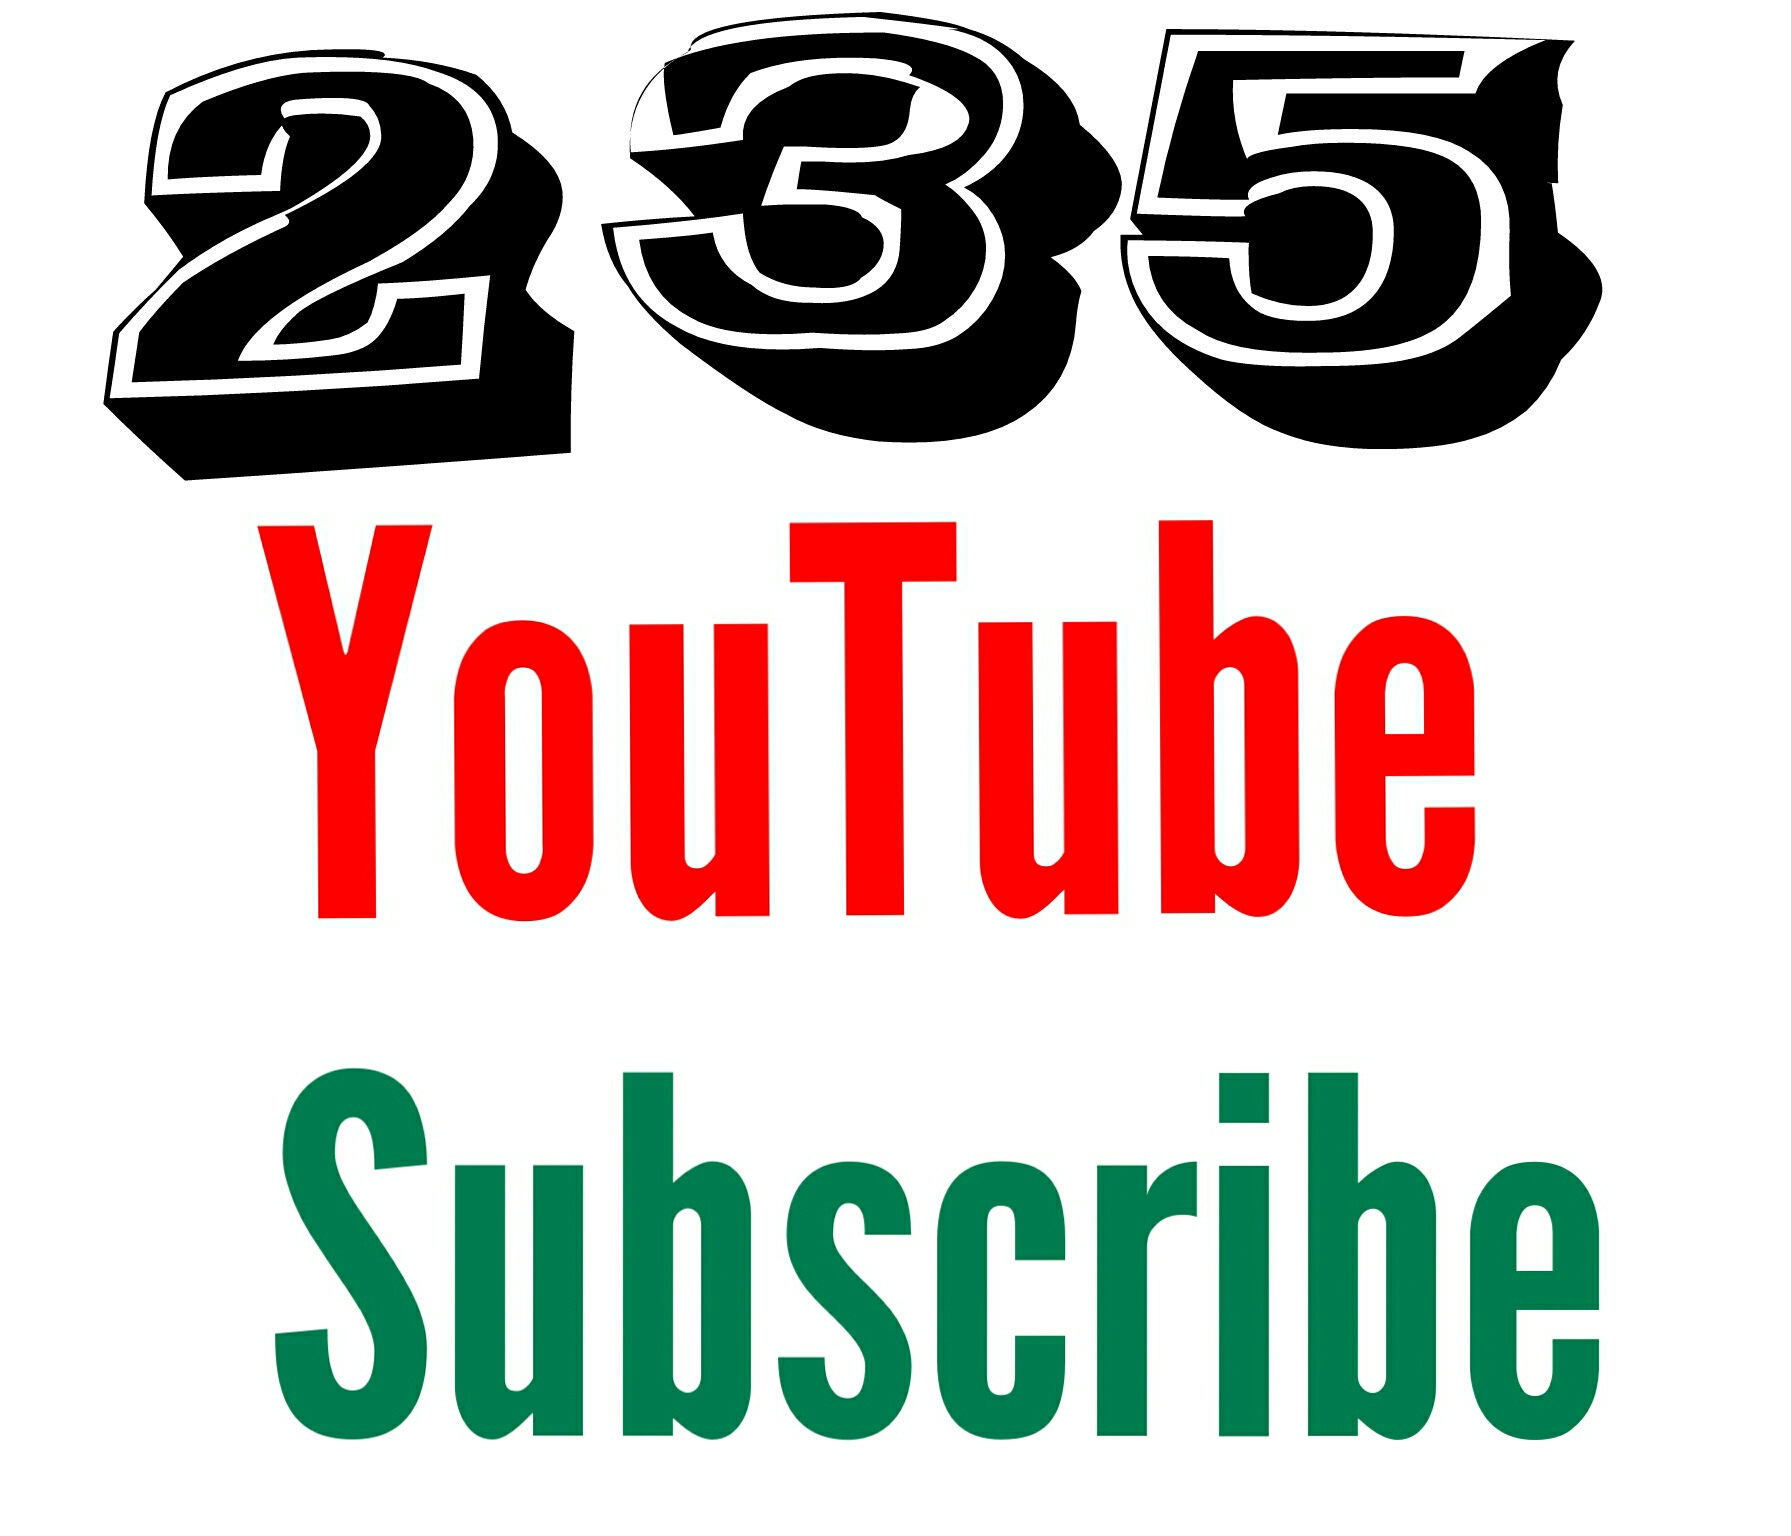 235+ Youtube non drop Subscribe super fast delivery 1-6 hours only for